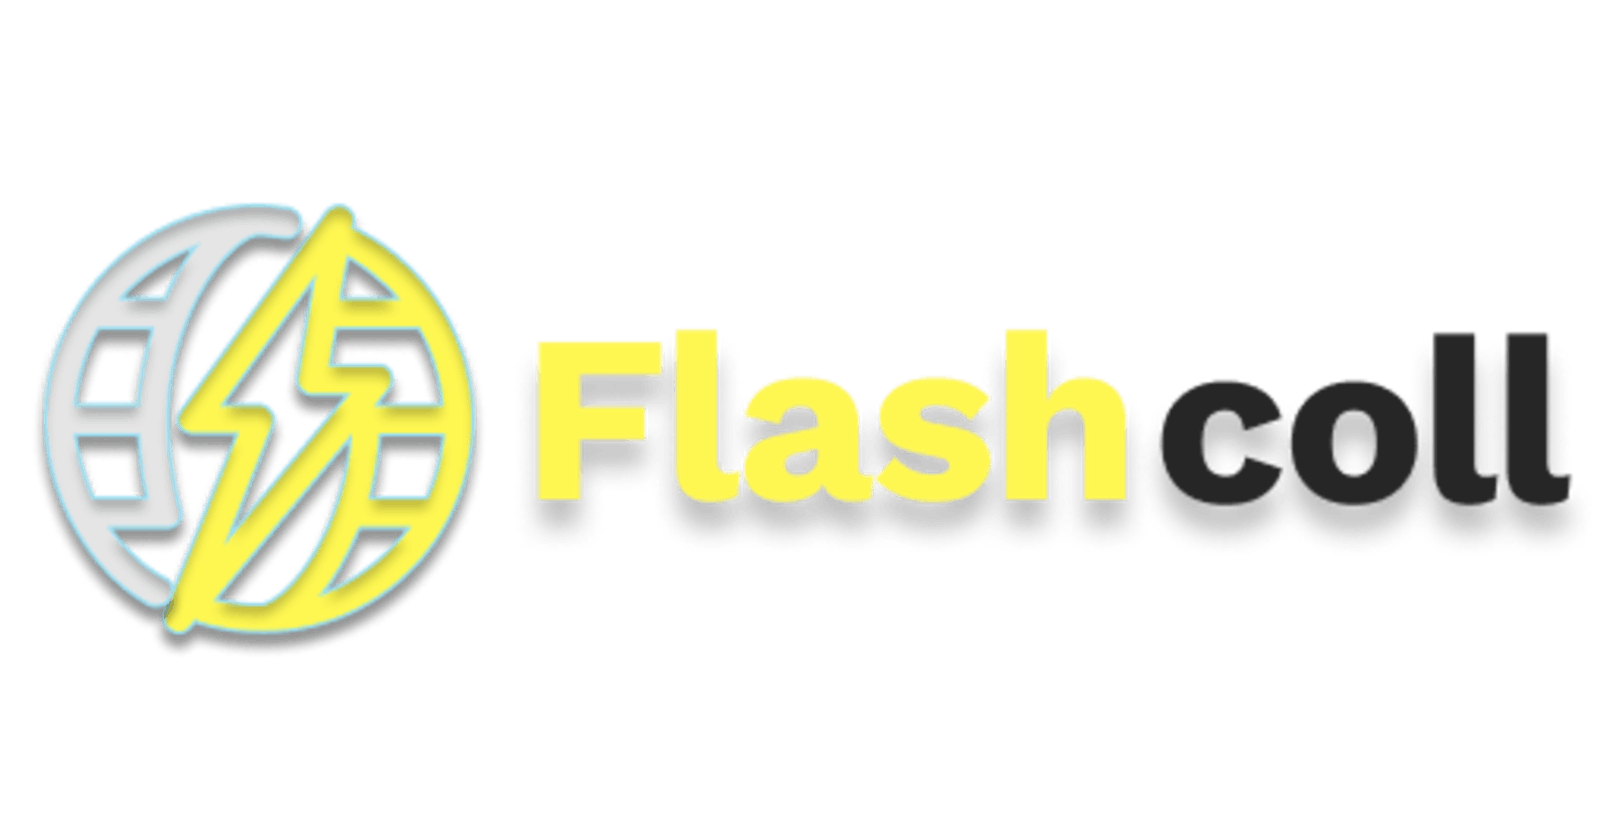 Flashcoll - platform to share your github projects and find collaborators